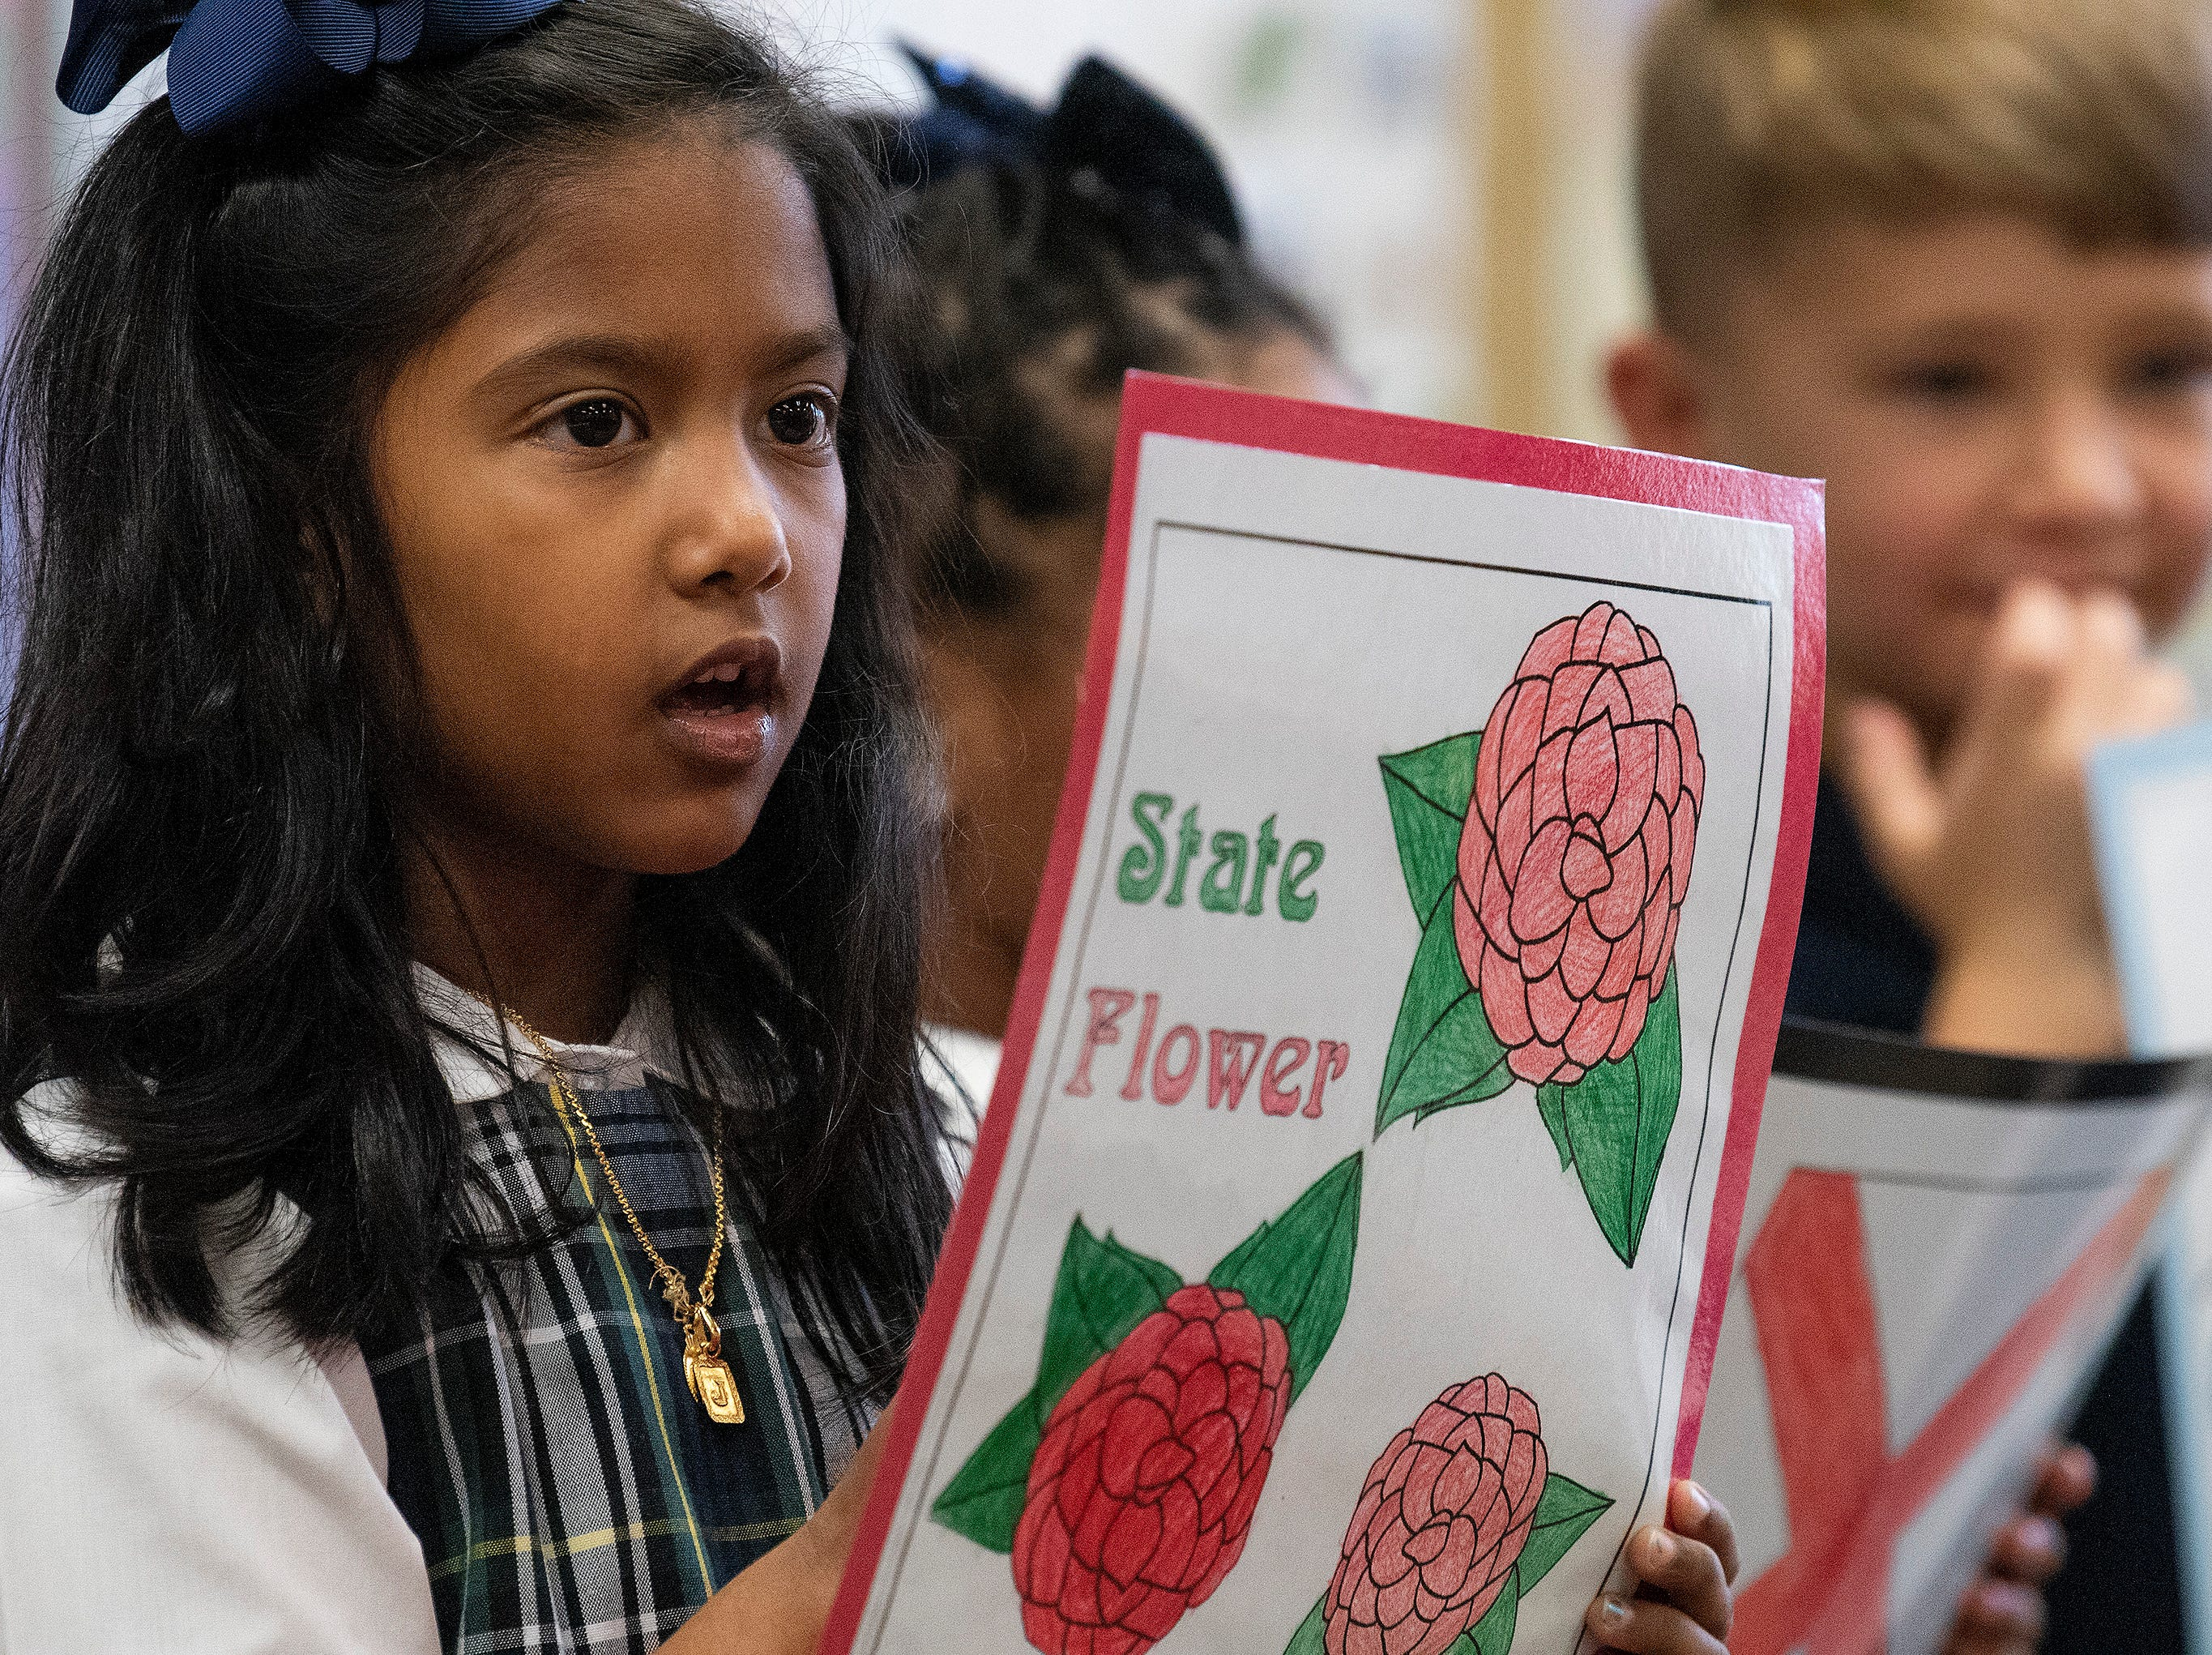 Students give presentations on Alabama while celebrating the Alabama Bicentennial at Holy Cross Episcopal School in Montgomery, Ala., on Friday February 15, 2019.